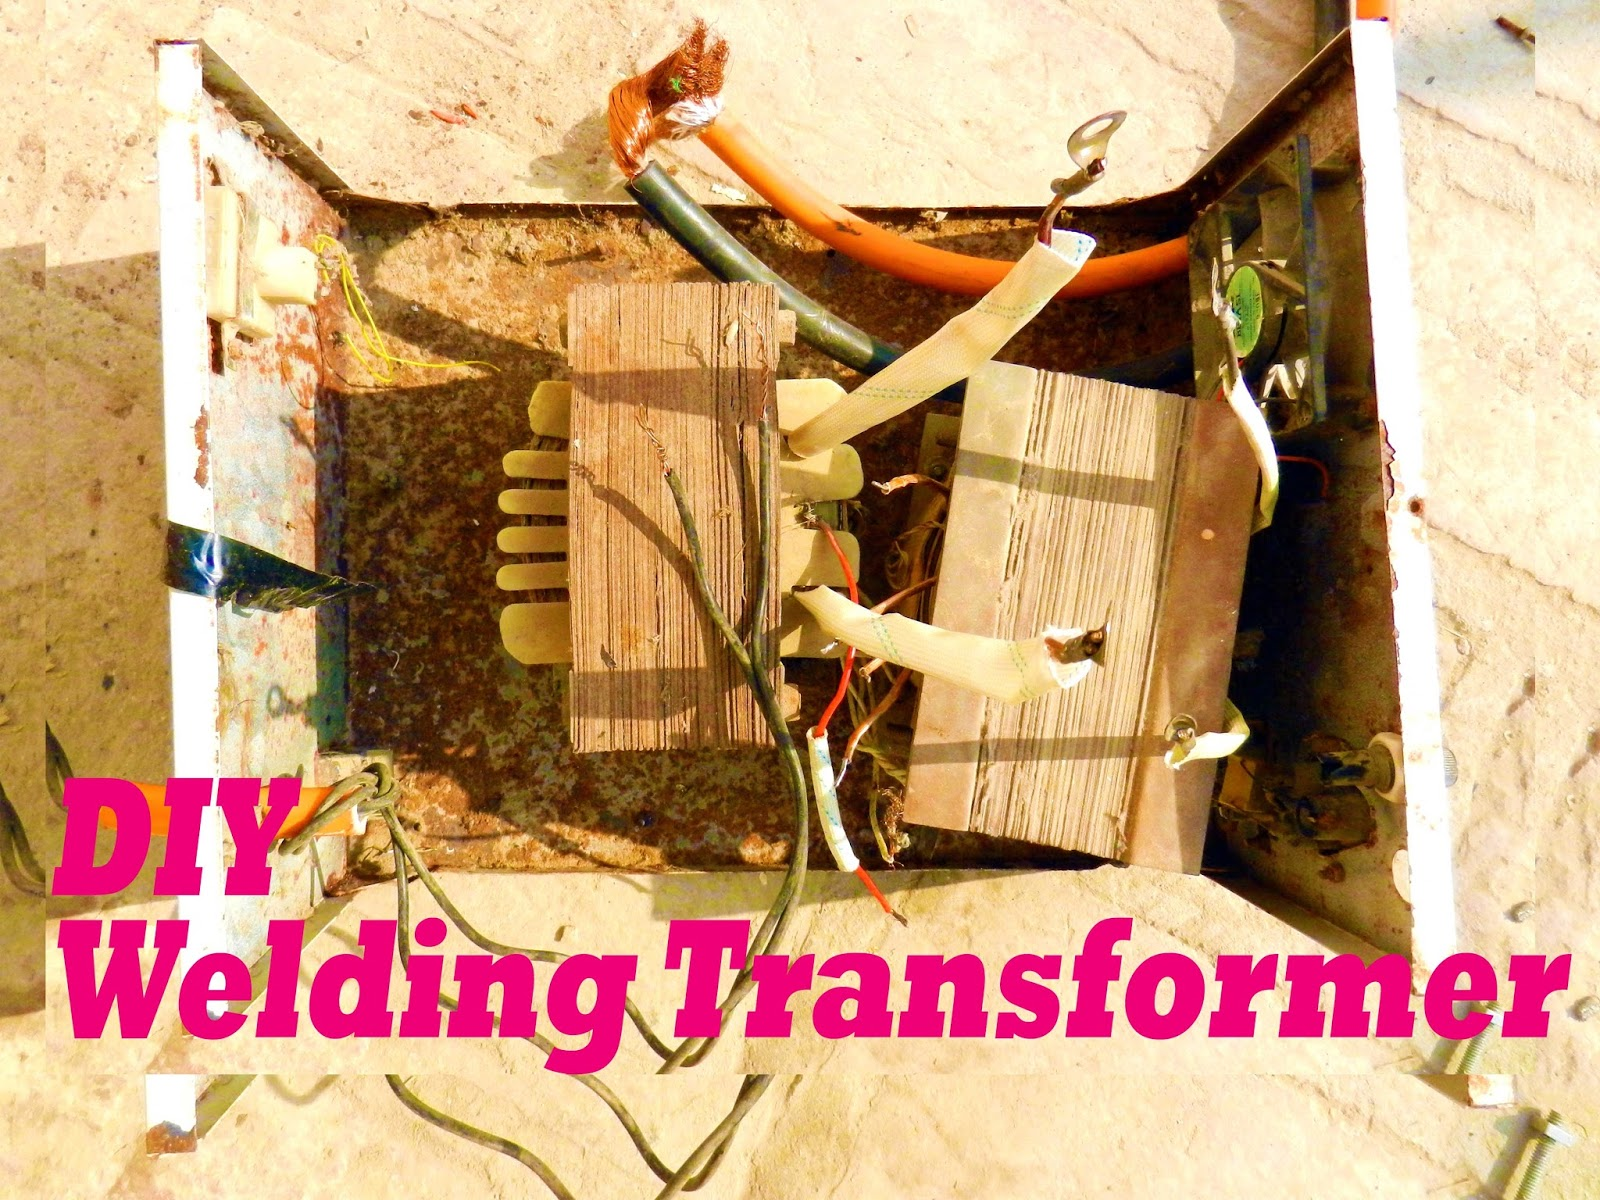 Do It Yourself Diy Arc Welding Transformer With Schematic And Machine Diagram Tests